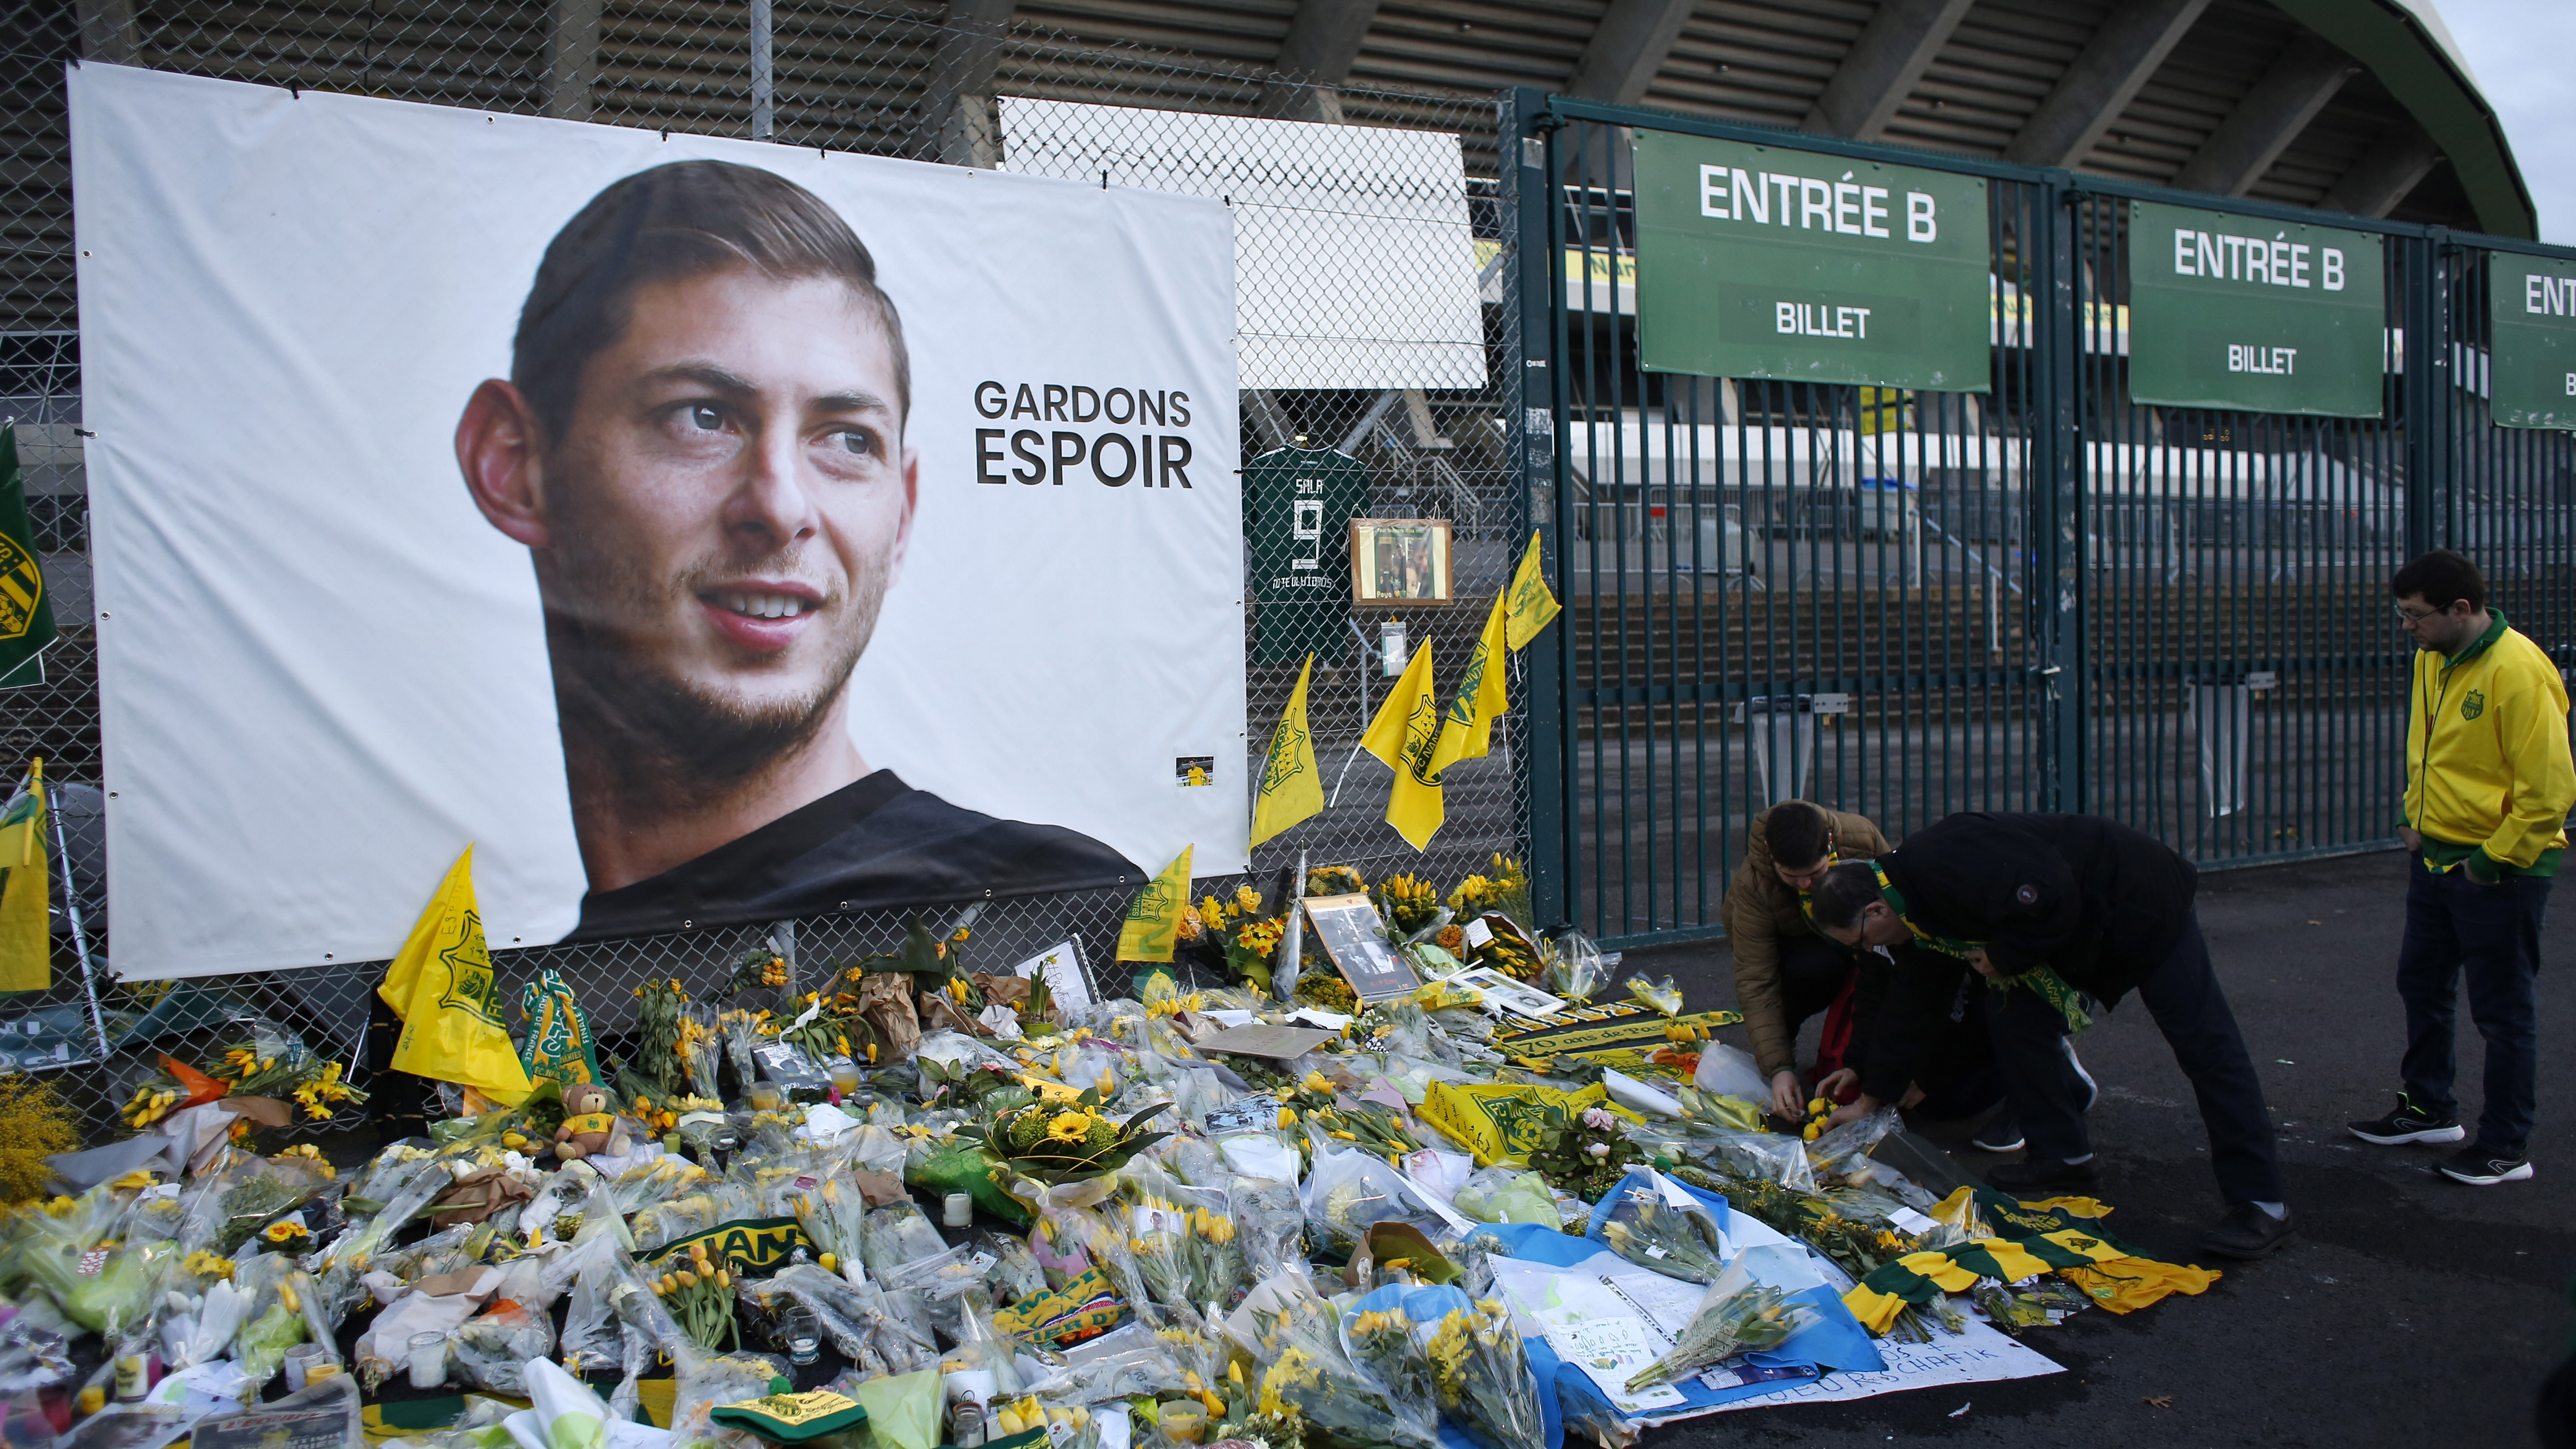 Tributes outside the ground. Image: PA Images